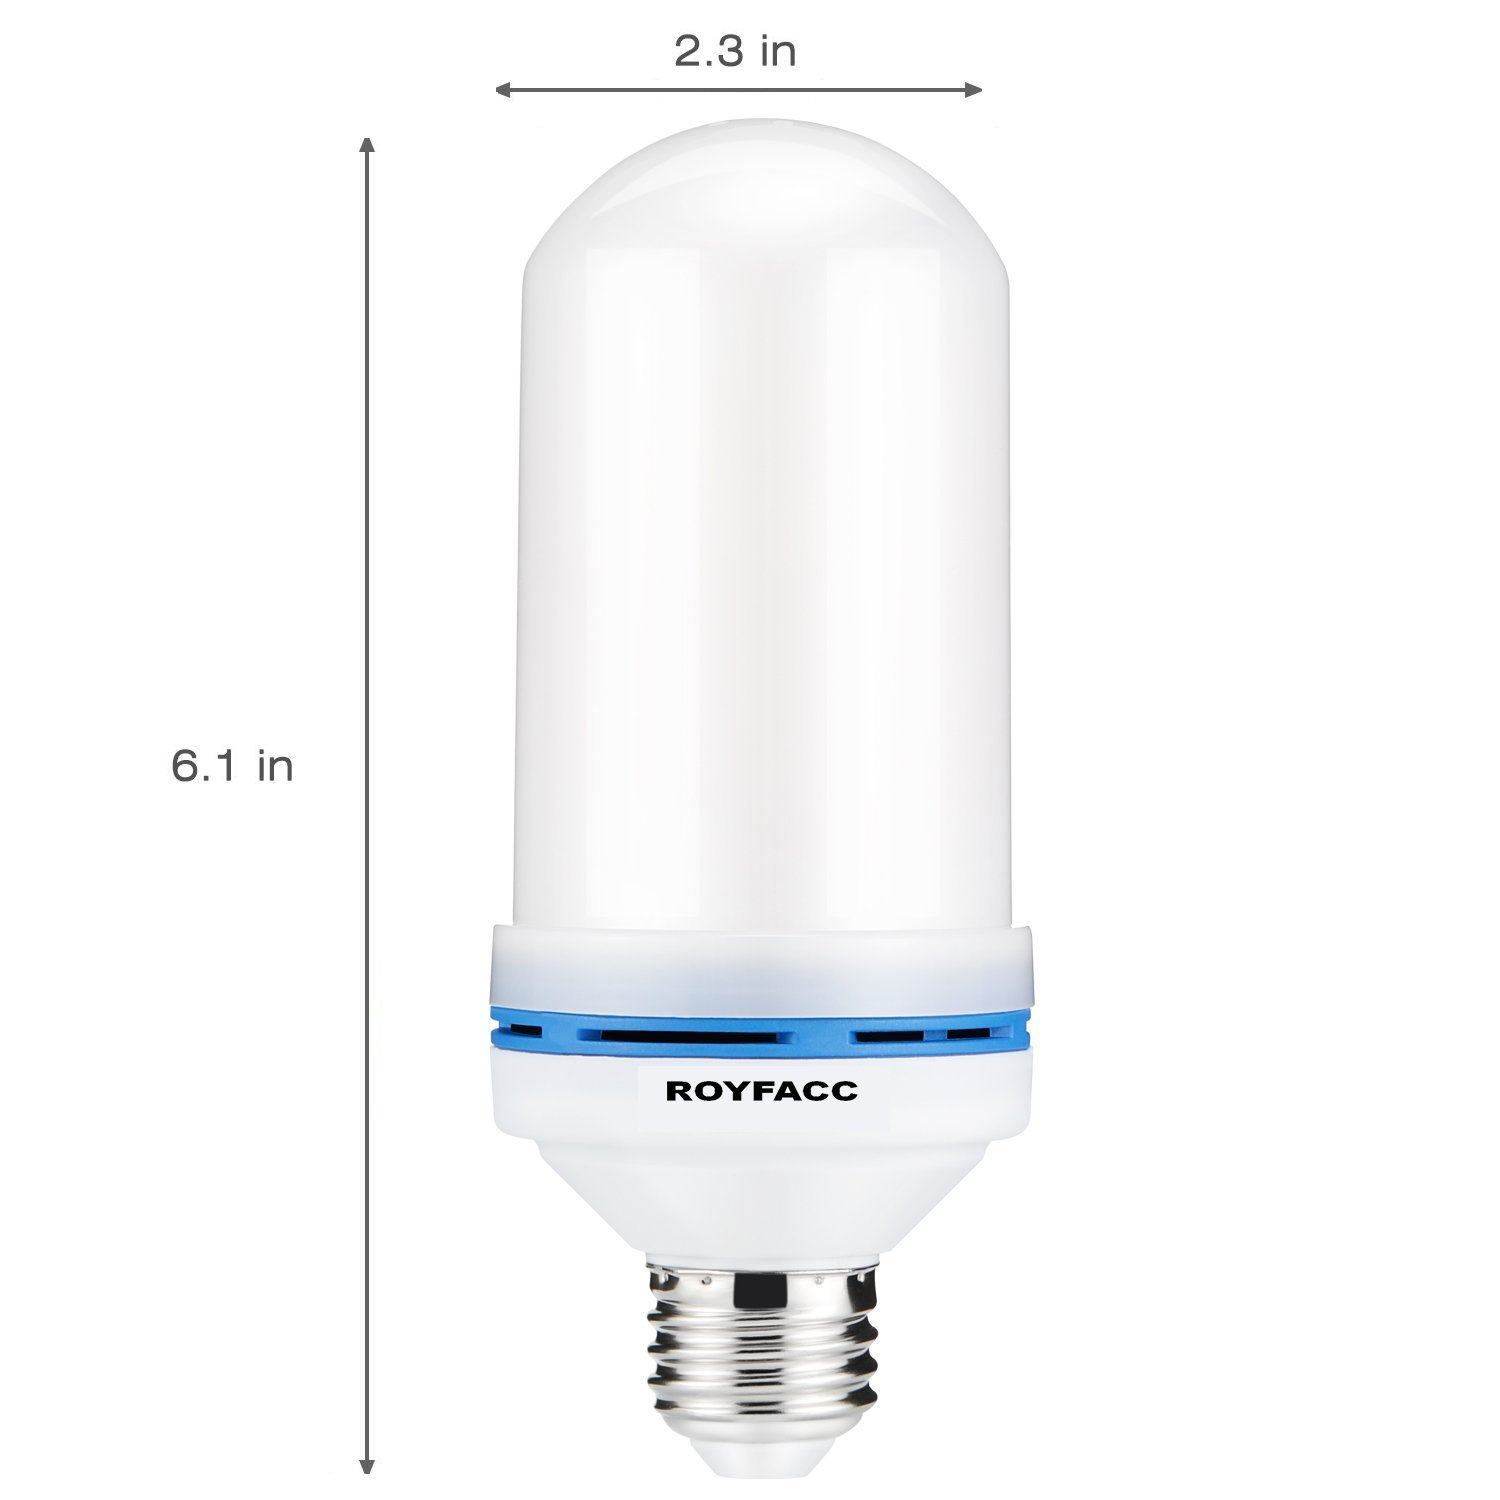 ROYFACC LED Light Bulb Flickering Vintage Torch Light Mood Lamp for Table Lamp with 3 Modes Home Garden Party Pathway Decor E26 Base Flame Effect Light Bulbs